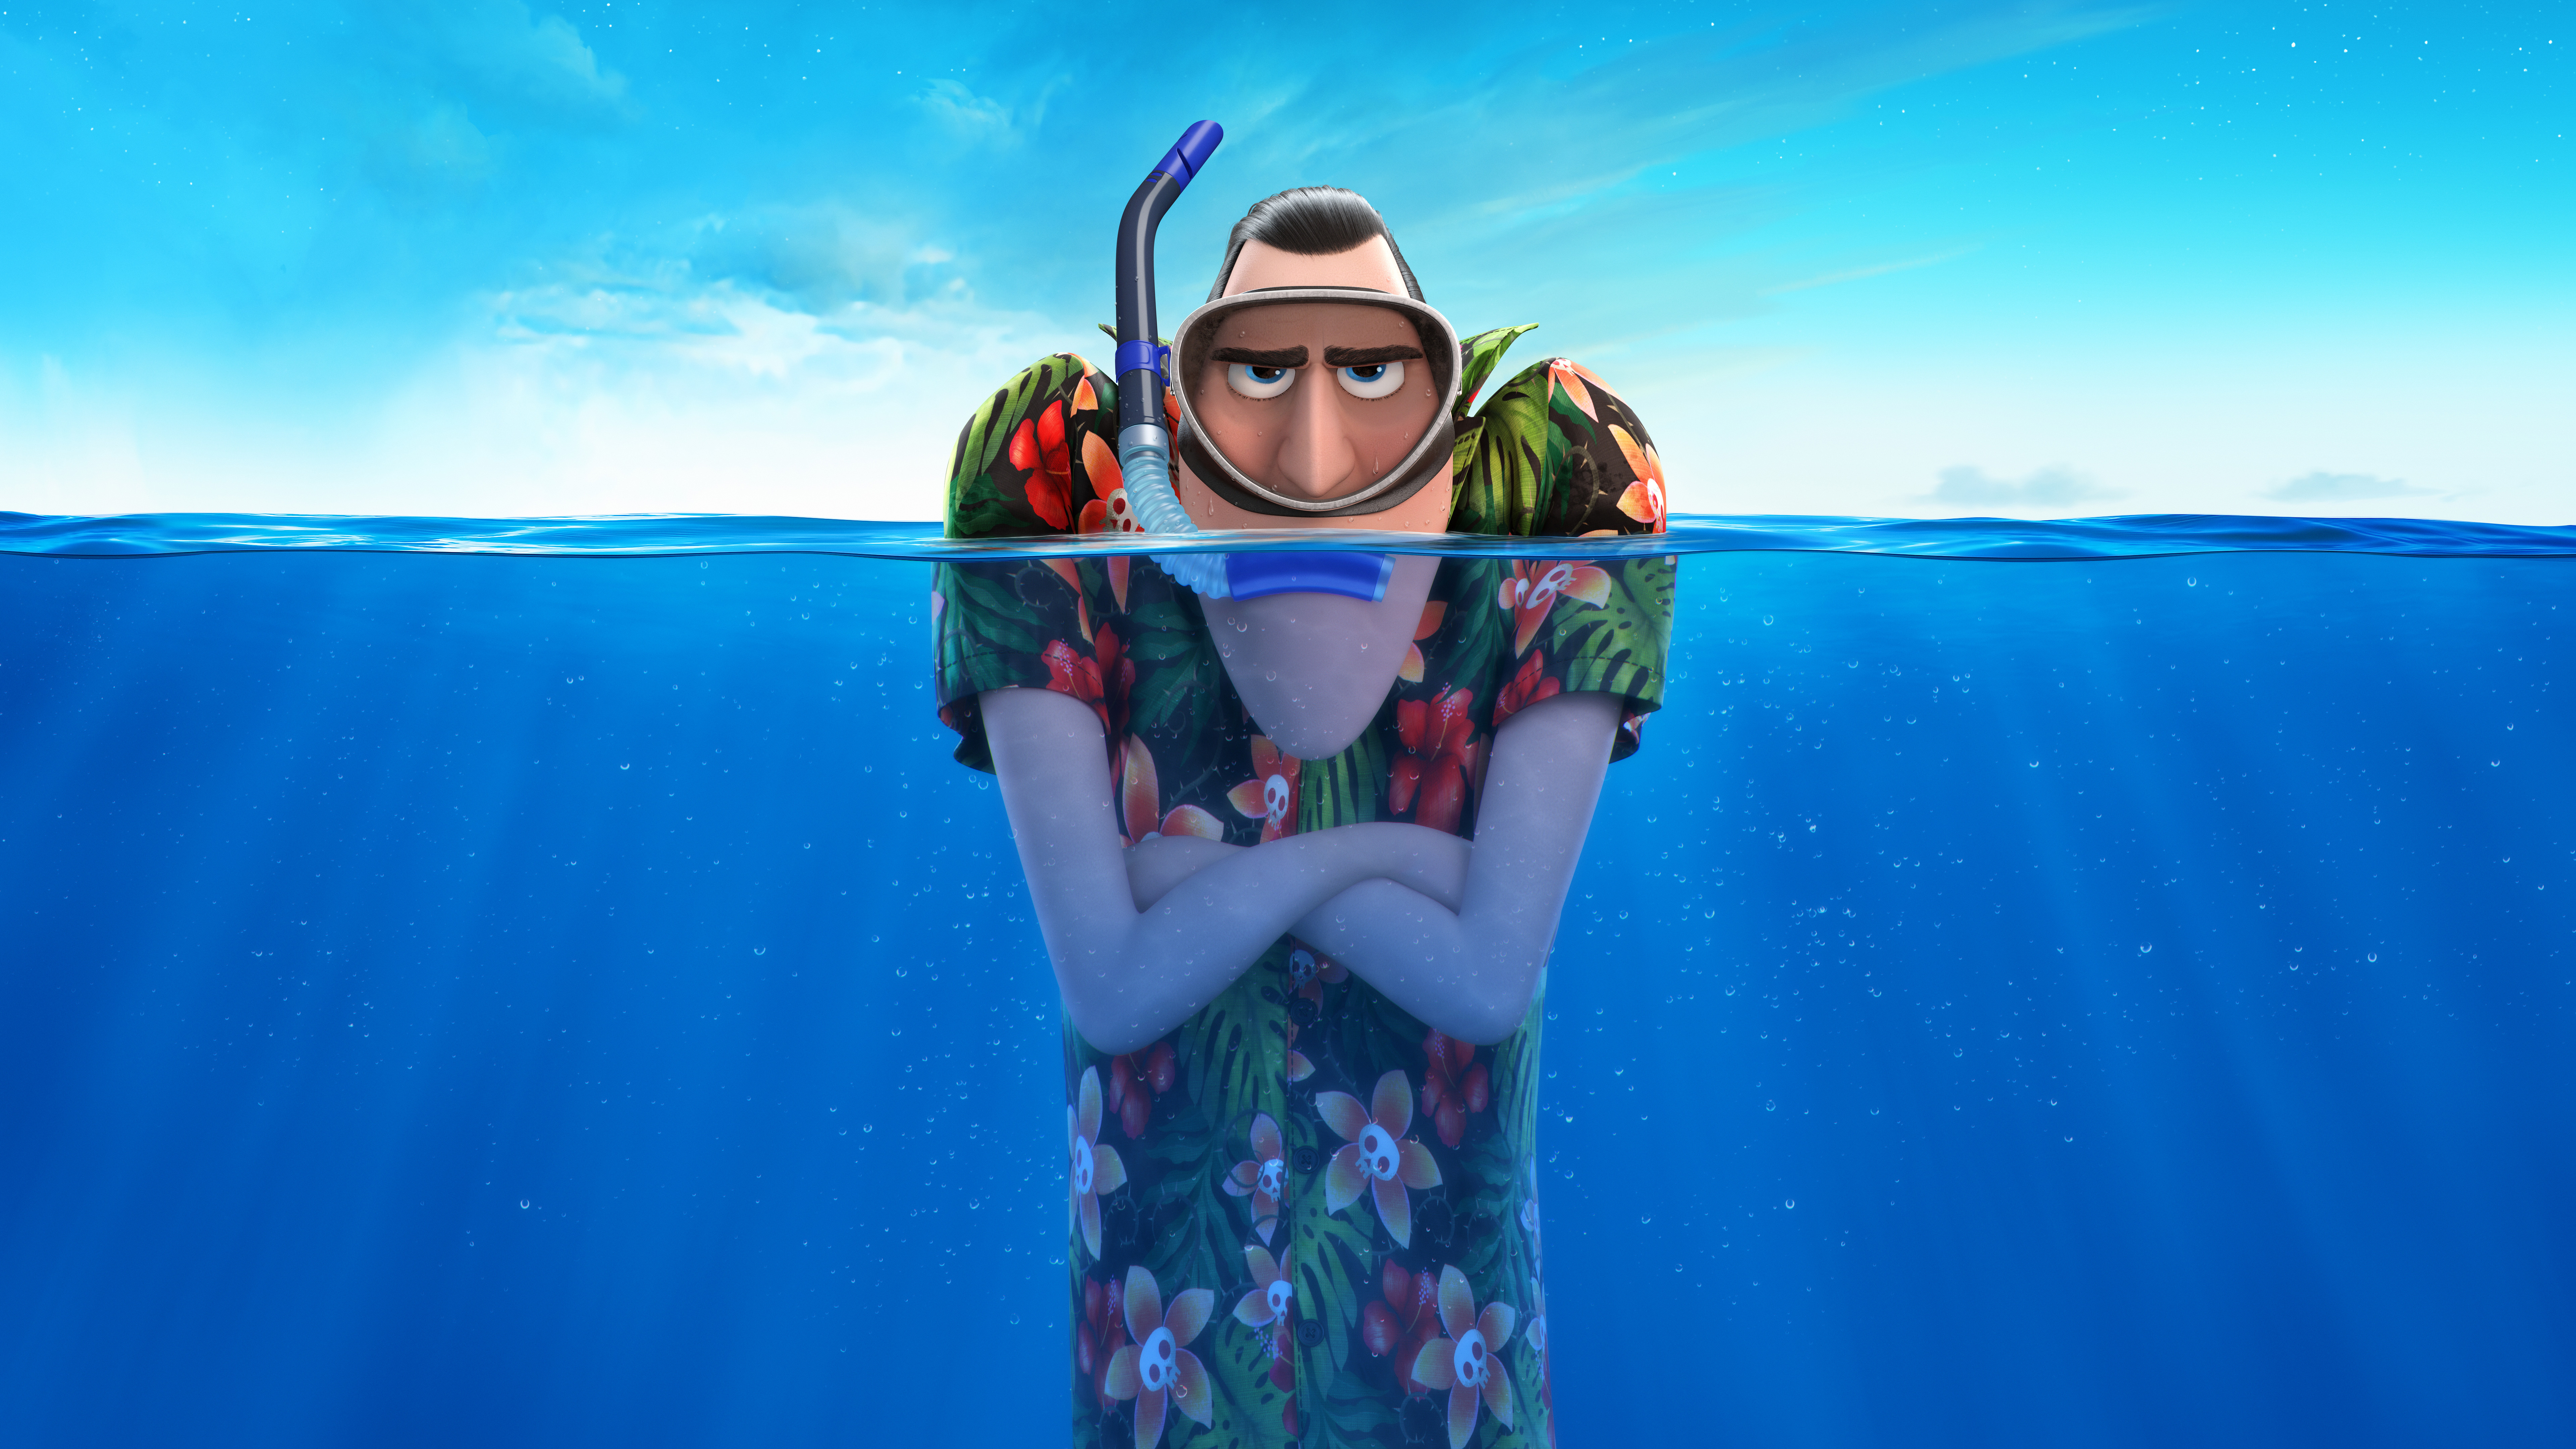 7680x4320 Hotel Transylvania 3 Summer Vacation 8k 8k HD 4k Wallpapers, Images, Backgrounds ...